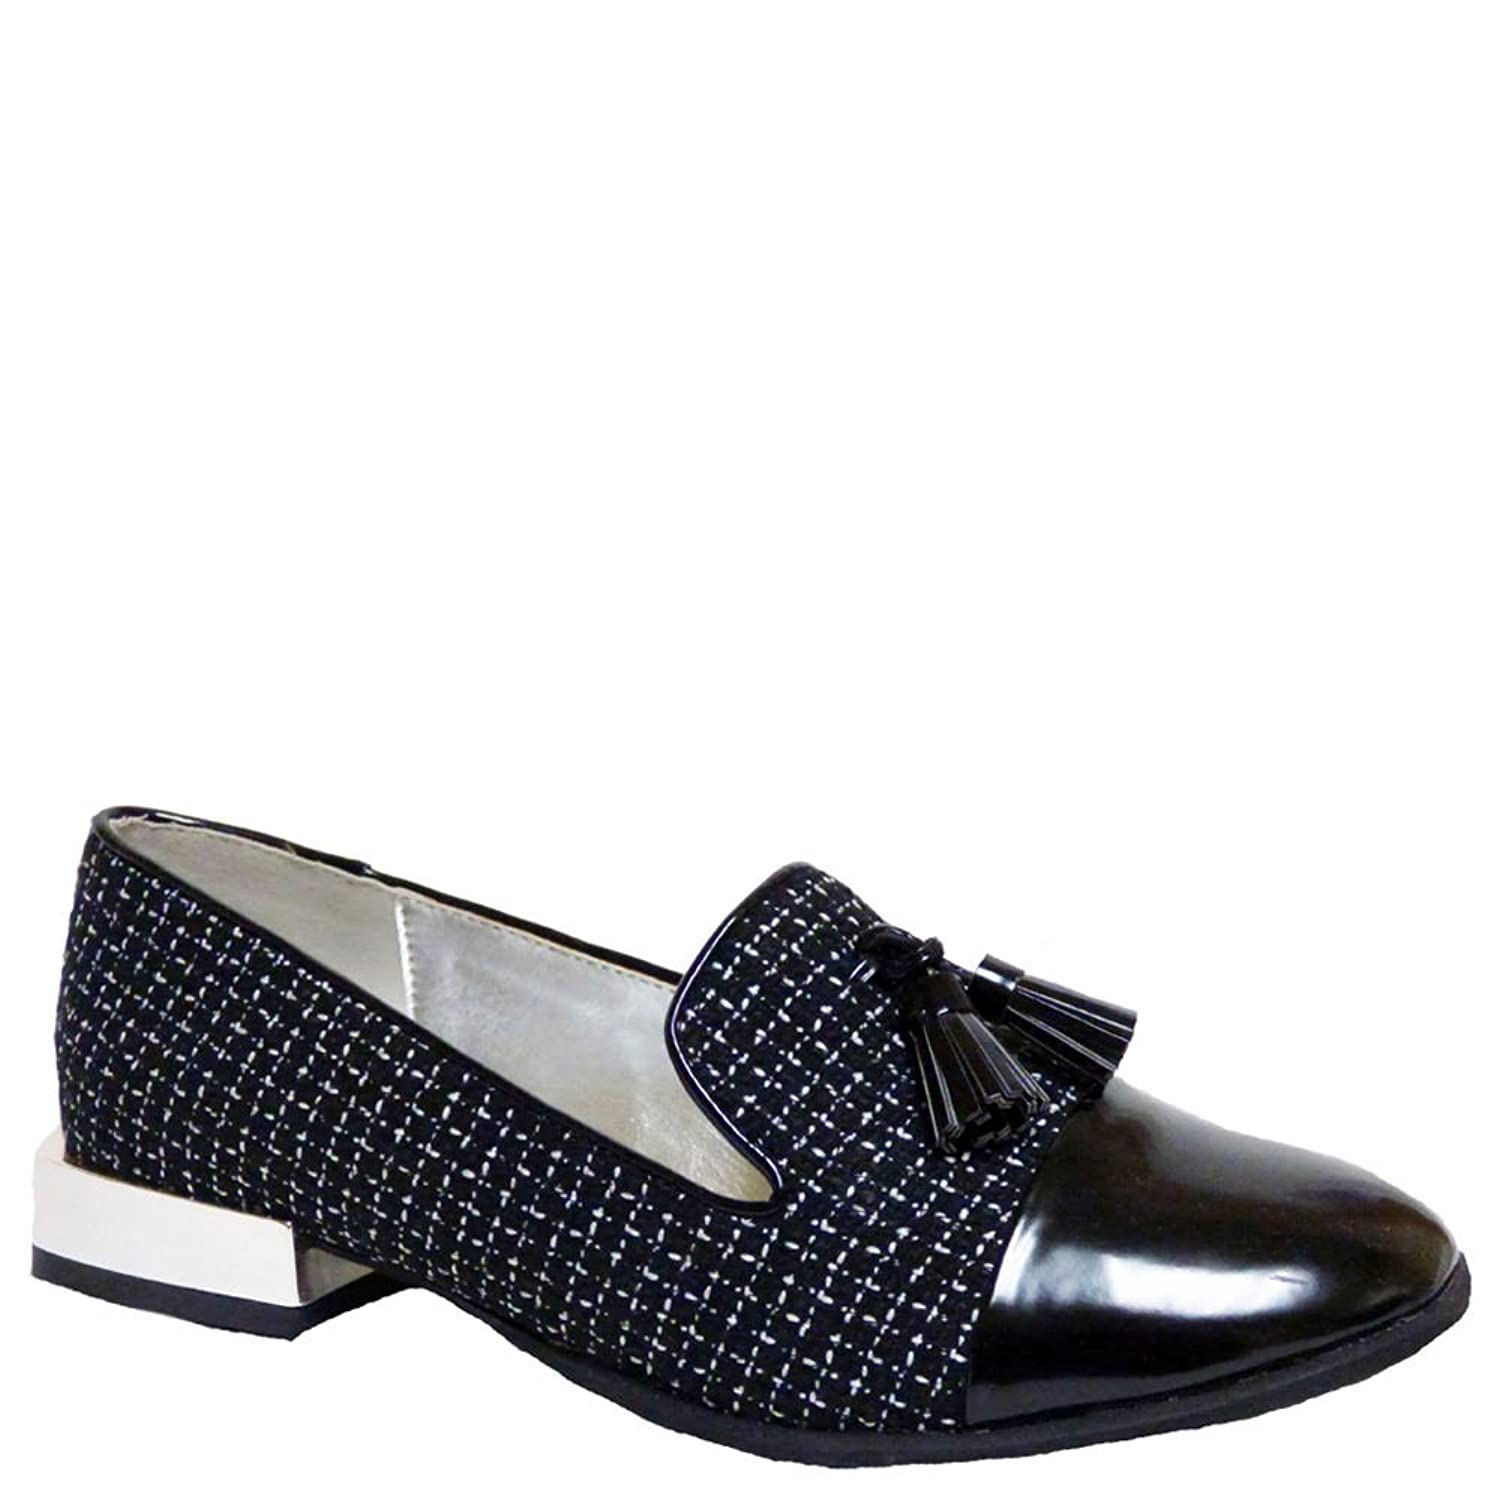 a4f47f1f07 Bellini Women's Bainbridge Tassel Loafer 60%OFF - twofuae.com